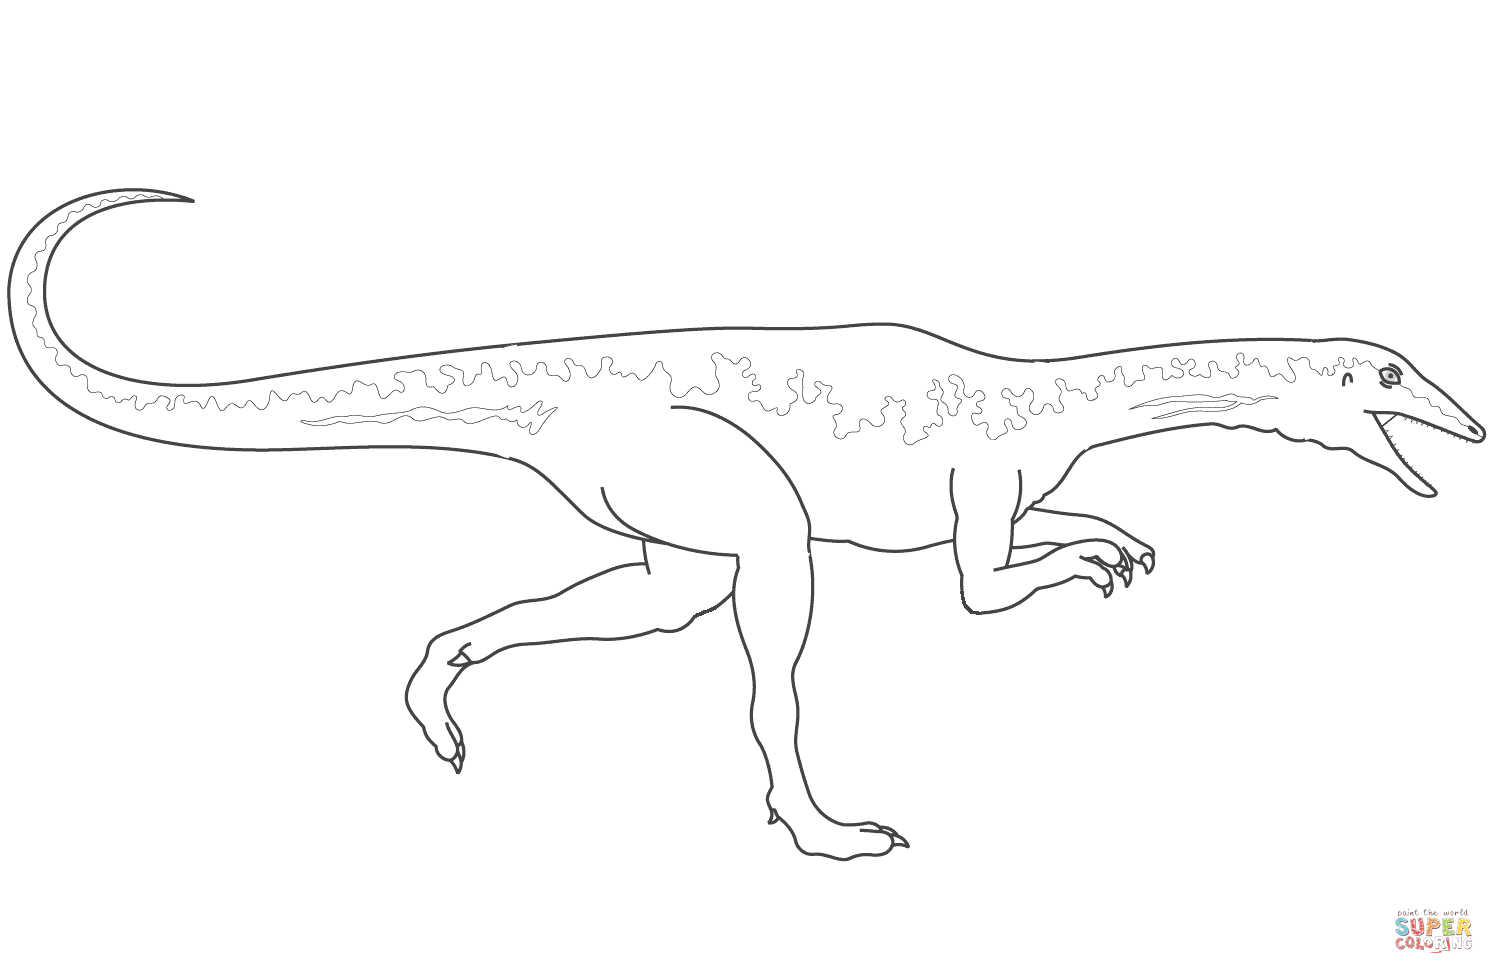 troodon coloring page ausmalbild dinosaurier velociraptor ausmalbilder page troodon coloring